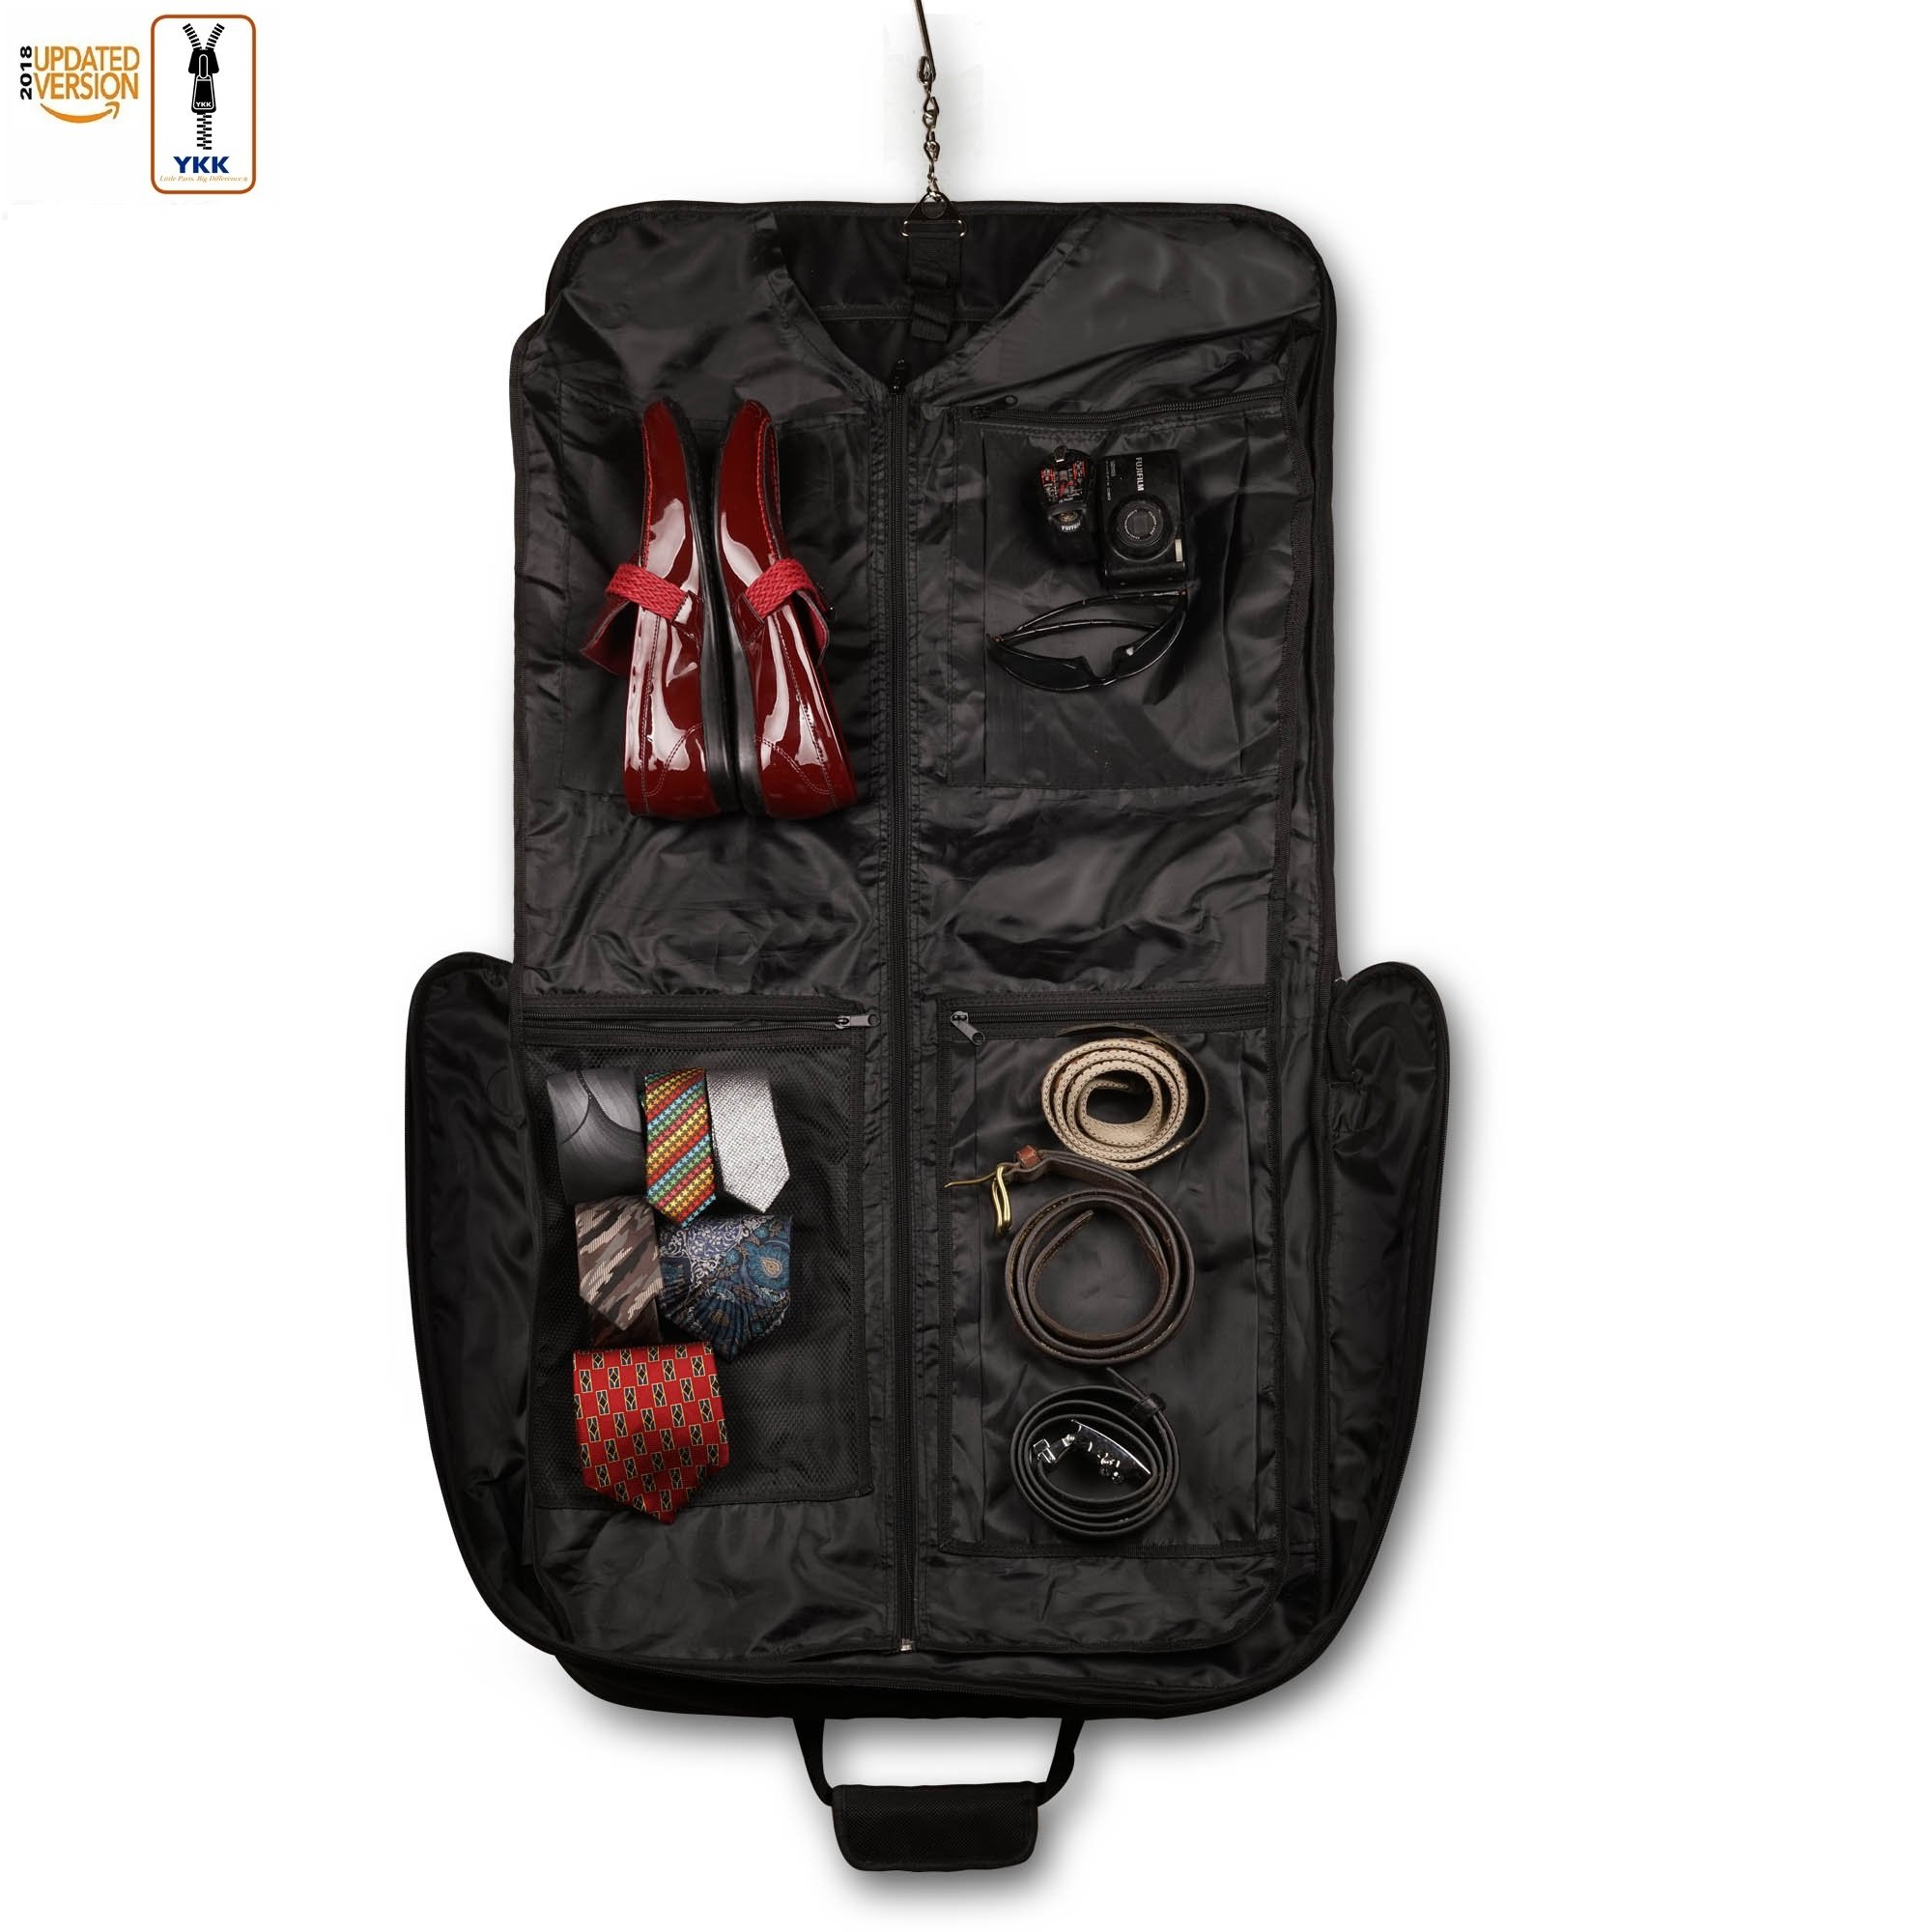 3 Suit Carry On Garment Bag for Travel & Business Trips With Shoulder Strap 40'' Bagazzi Brand by Bagazzi (Image #3)